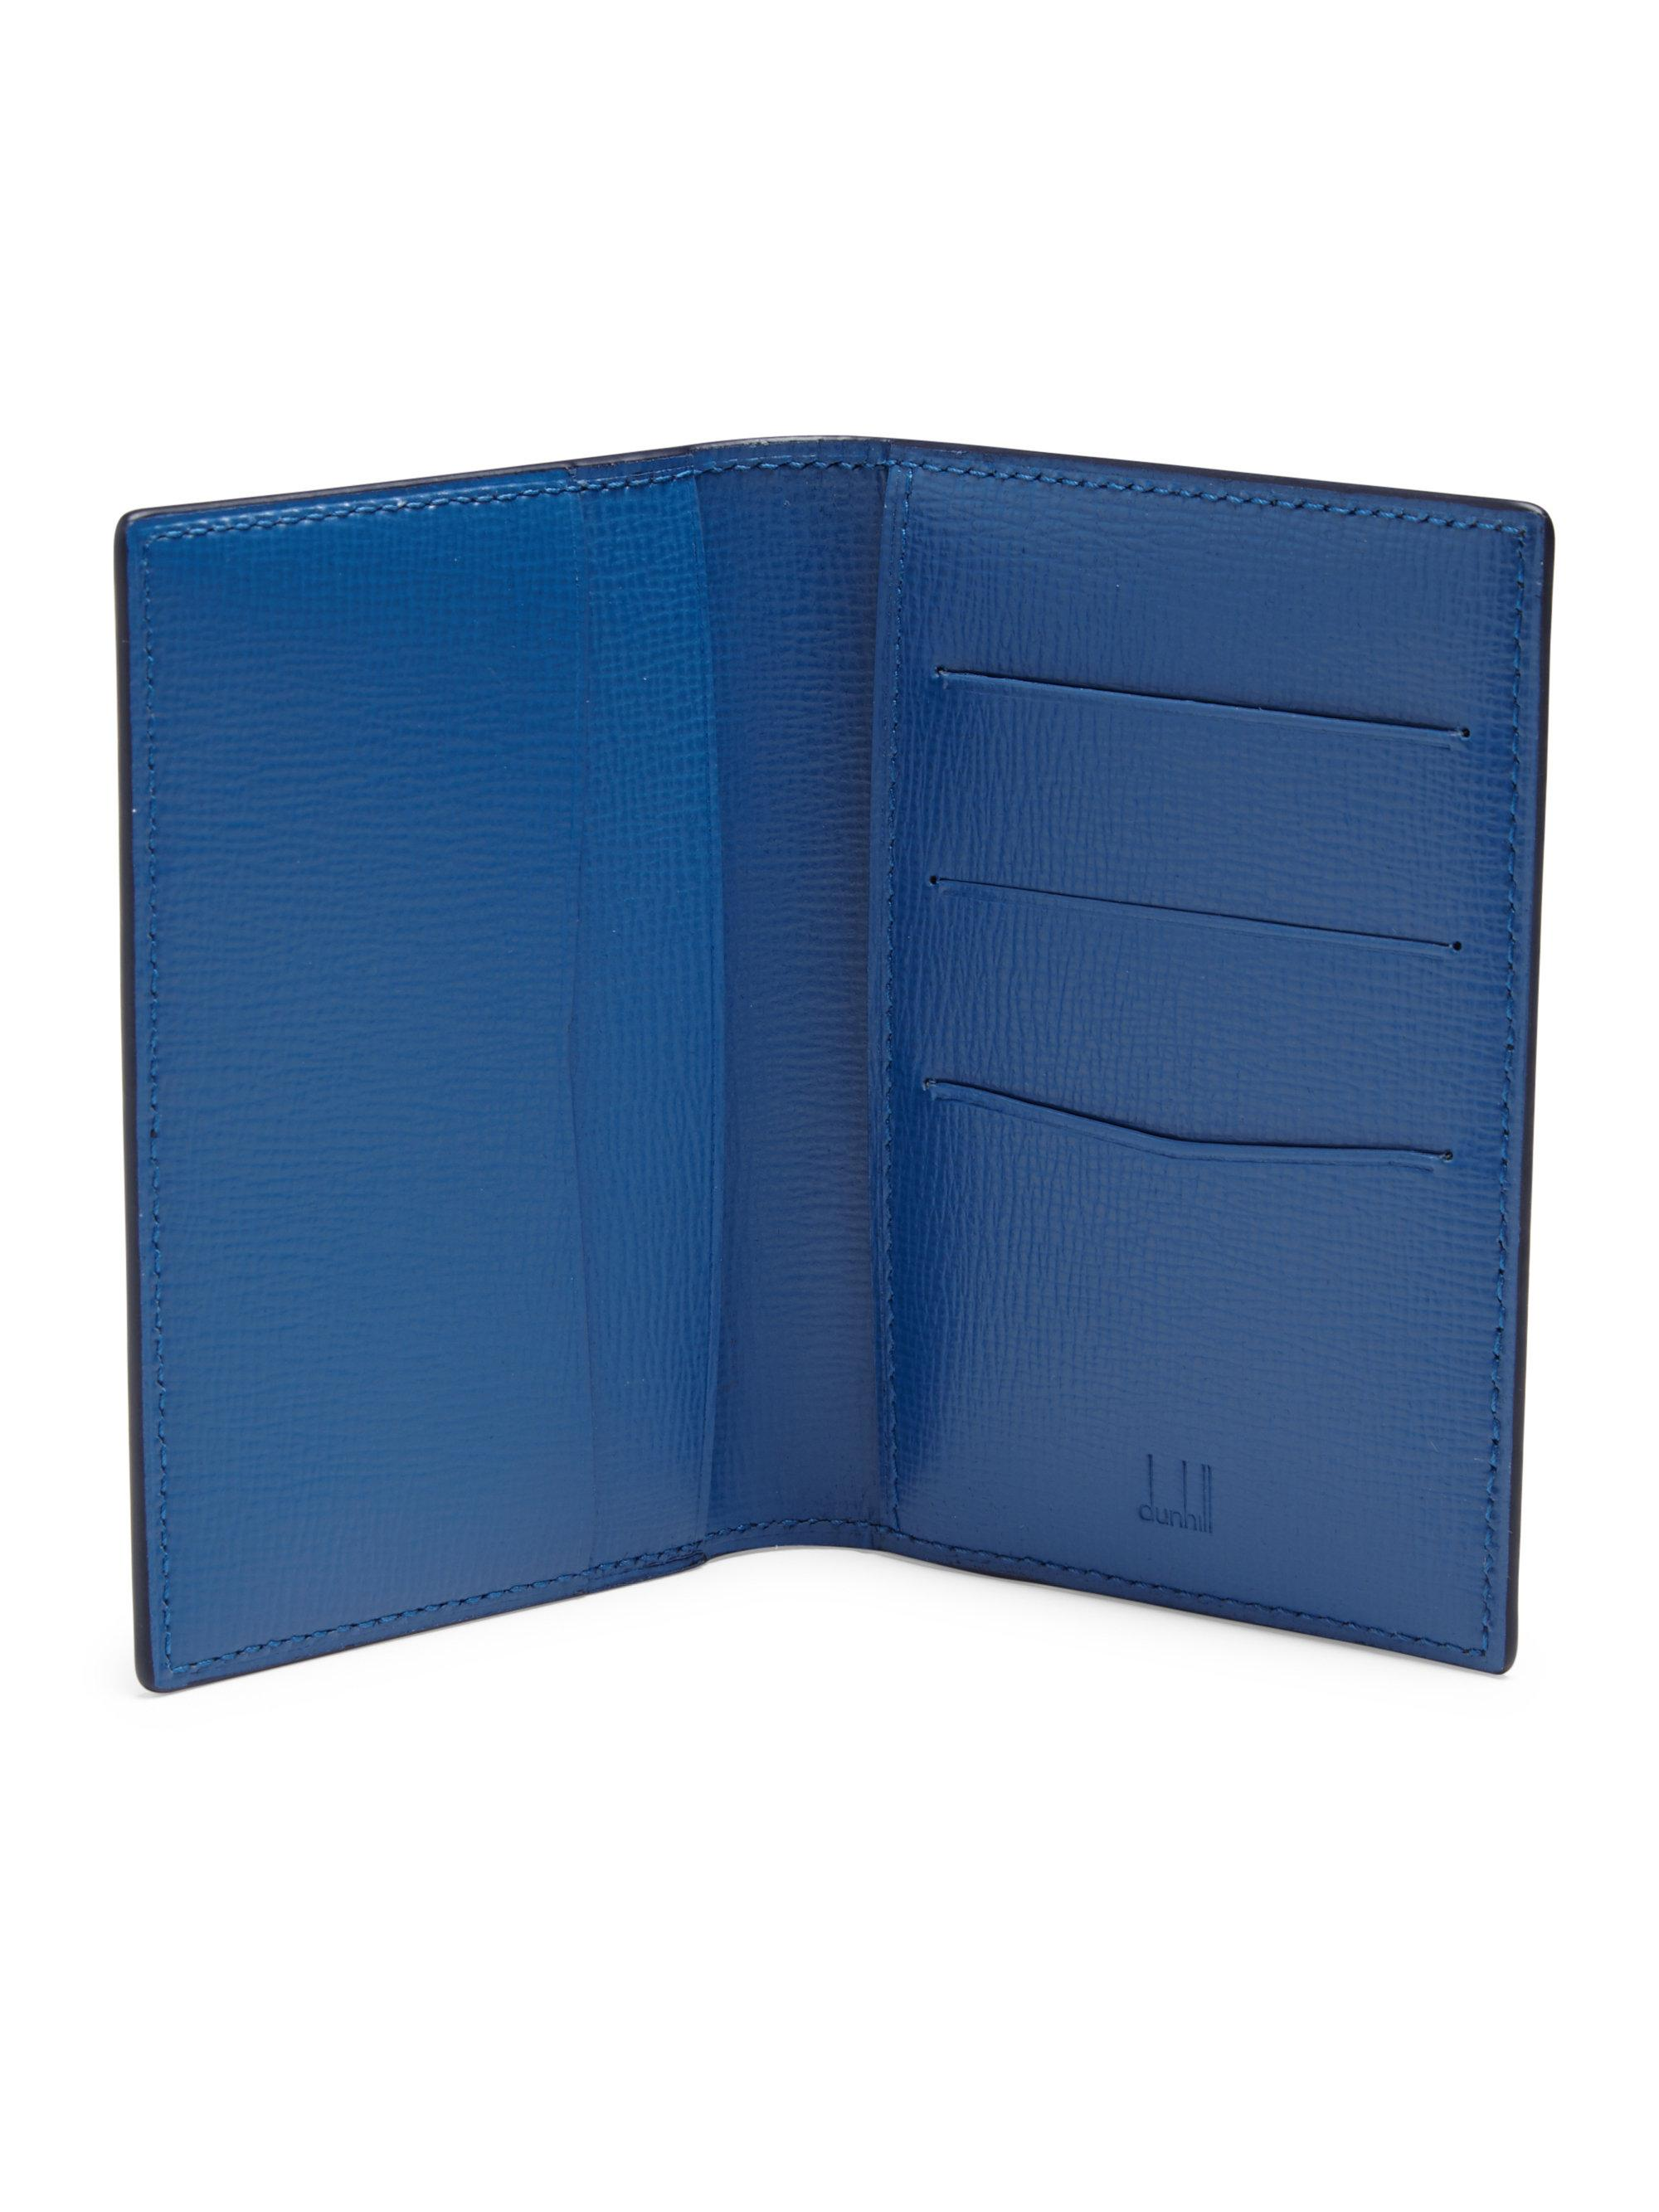 Lyst - Dunhill Bourdon Leather Business Card Case in Blue for Men